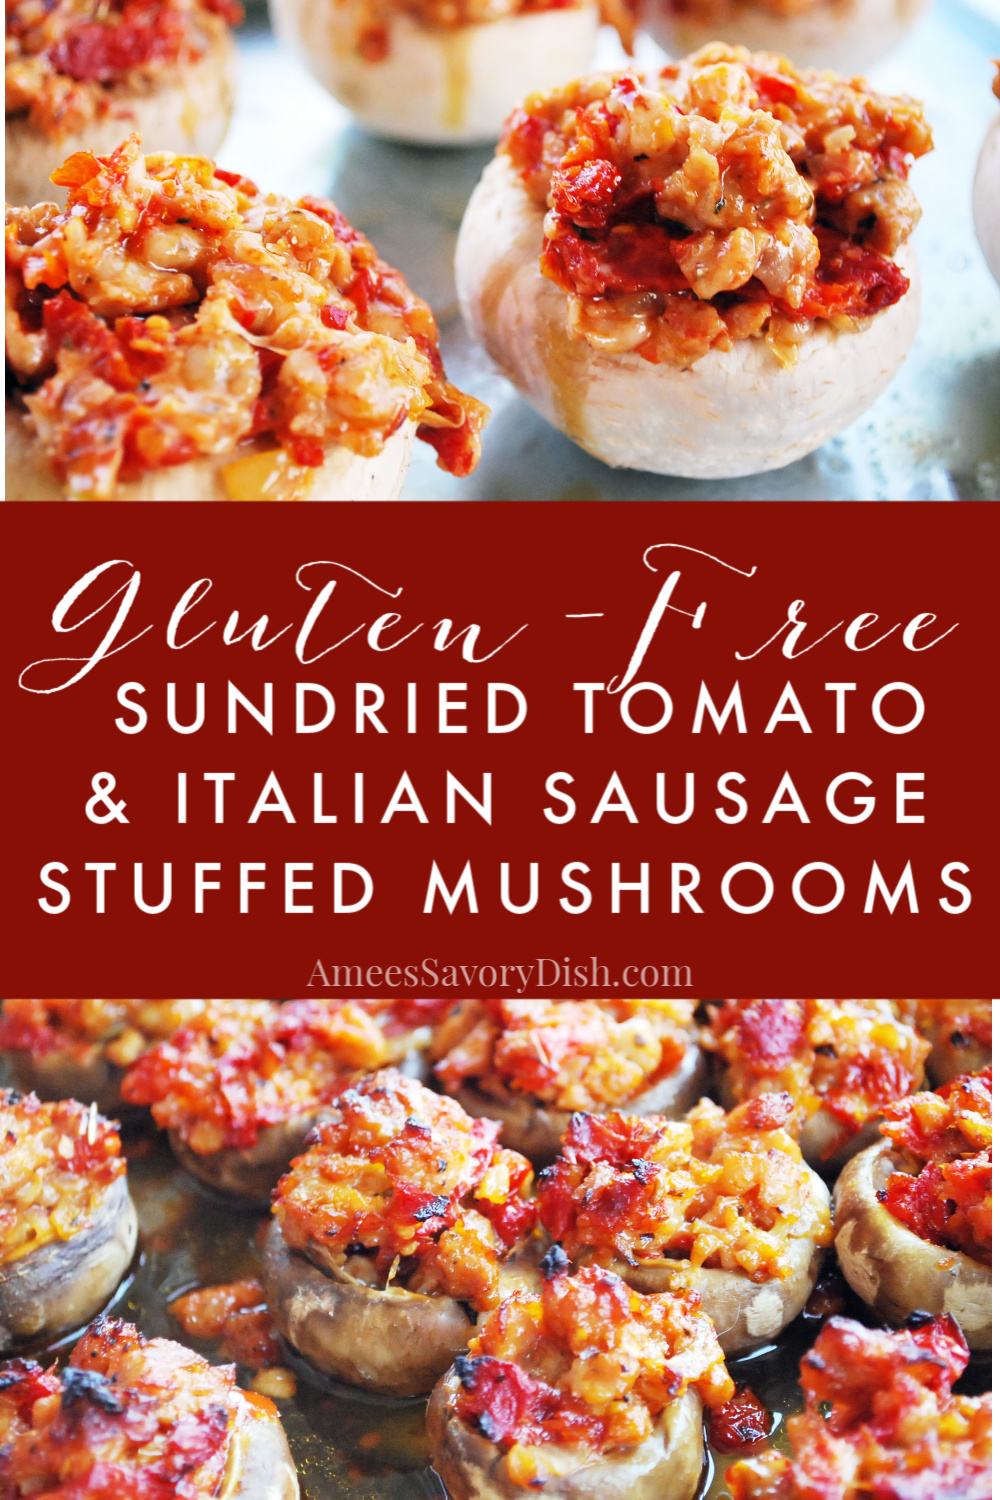 A delicious gluten-free recipe for sausage stuffed mushrooms made with sweet Italian sausage, sundried tomatoes, onions, Parmesan cheese, and fresh herbs.   via @Ameessavorydish